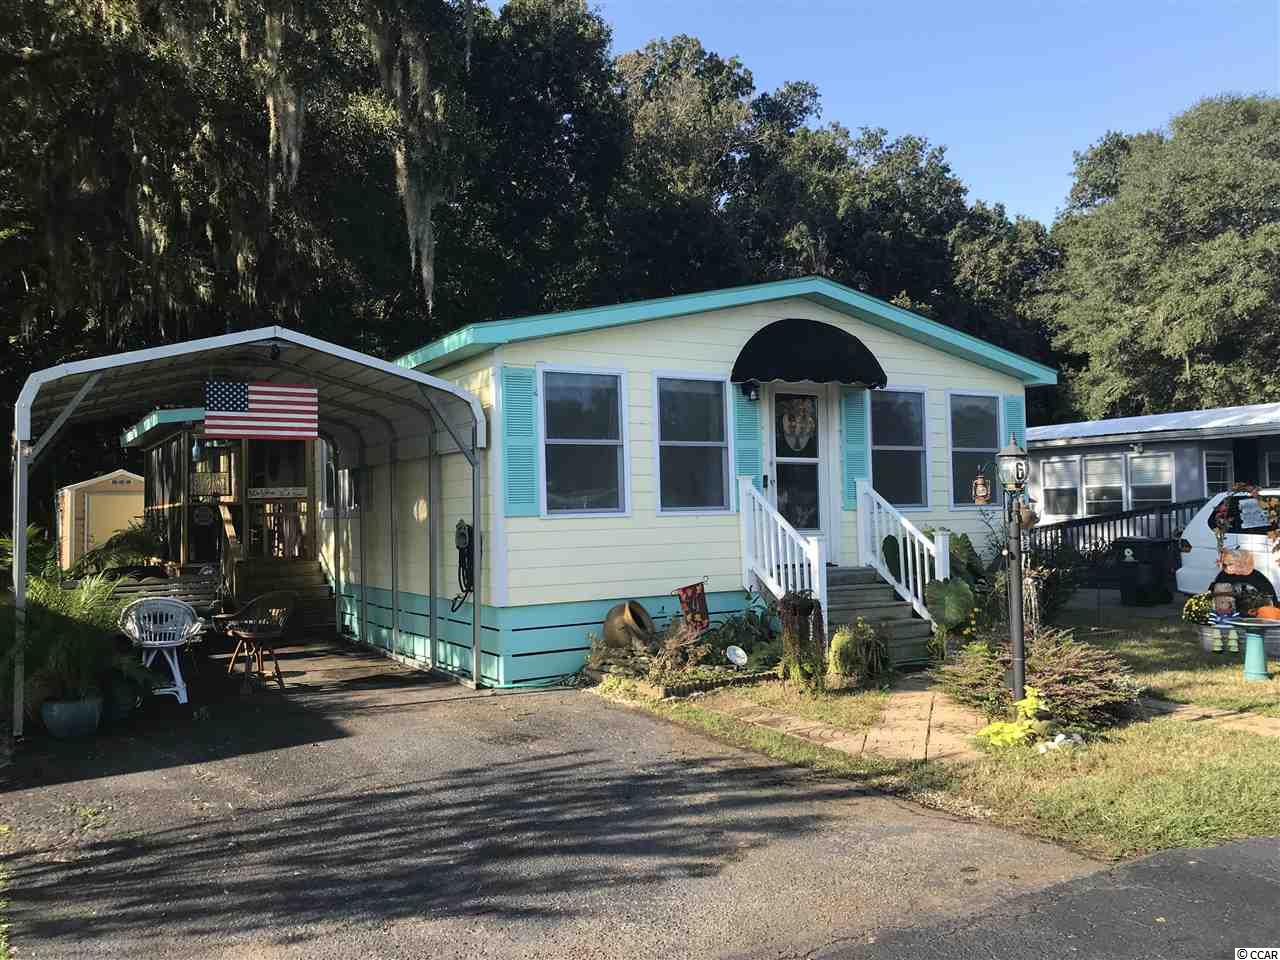 LAKEFRONT HOME in 55 & Older community.  Use the path to walk or ride to Huntington Beach that is only 1 mile away!  Lots of improvements in this well kept home including:  new roof, ship lap paneling and hot water tank; Also enjoy the addition of the 4 Season/Carolina room (10x23).  This 3 BR 2 BA home boasts a large kitchen with a breakfast nook; large living room; separate dining room; screened in porch; and storage shed.  The view overlooks the pond and home is located on a dead end road that offers additional parking. Use the Clubhouse, pool, and participate in activities.  Community is close to Murrells Inlet's Waterfront restaurants as well as the hospital and doctor offices. FREE SECURE AREA FOR RV AND BOAT PARKING!!  COME SEE THIS ONE IN PERSON!